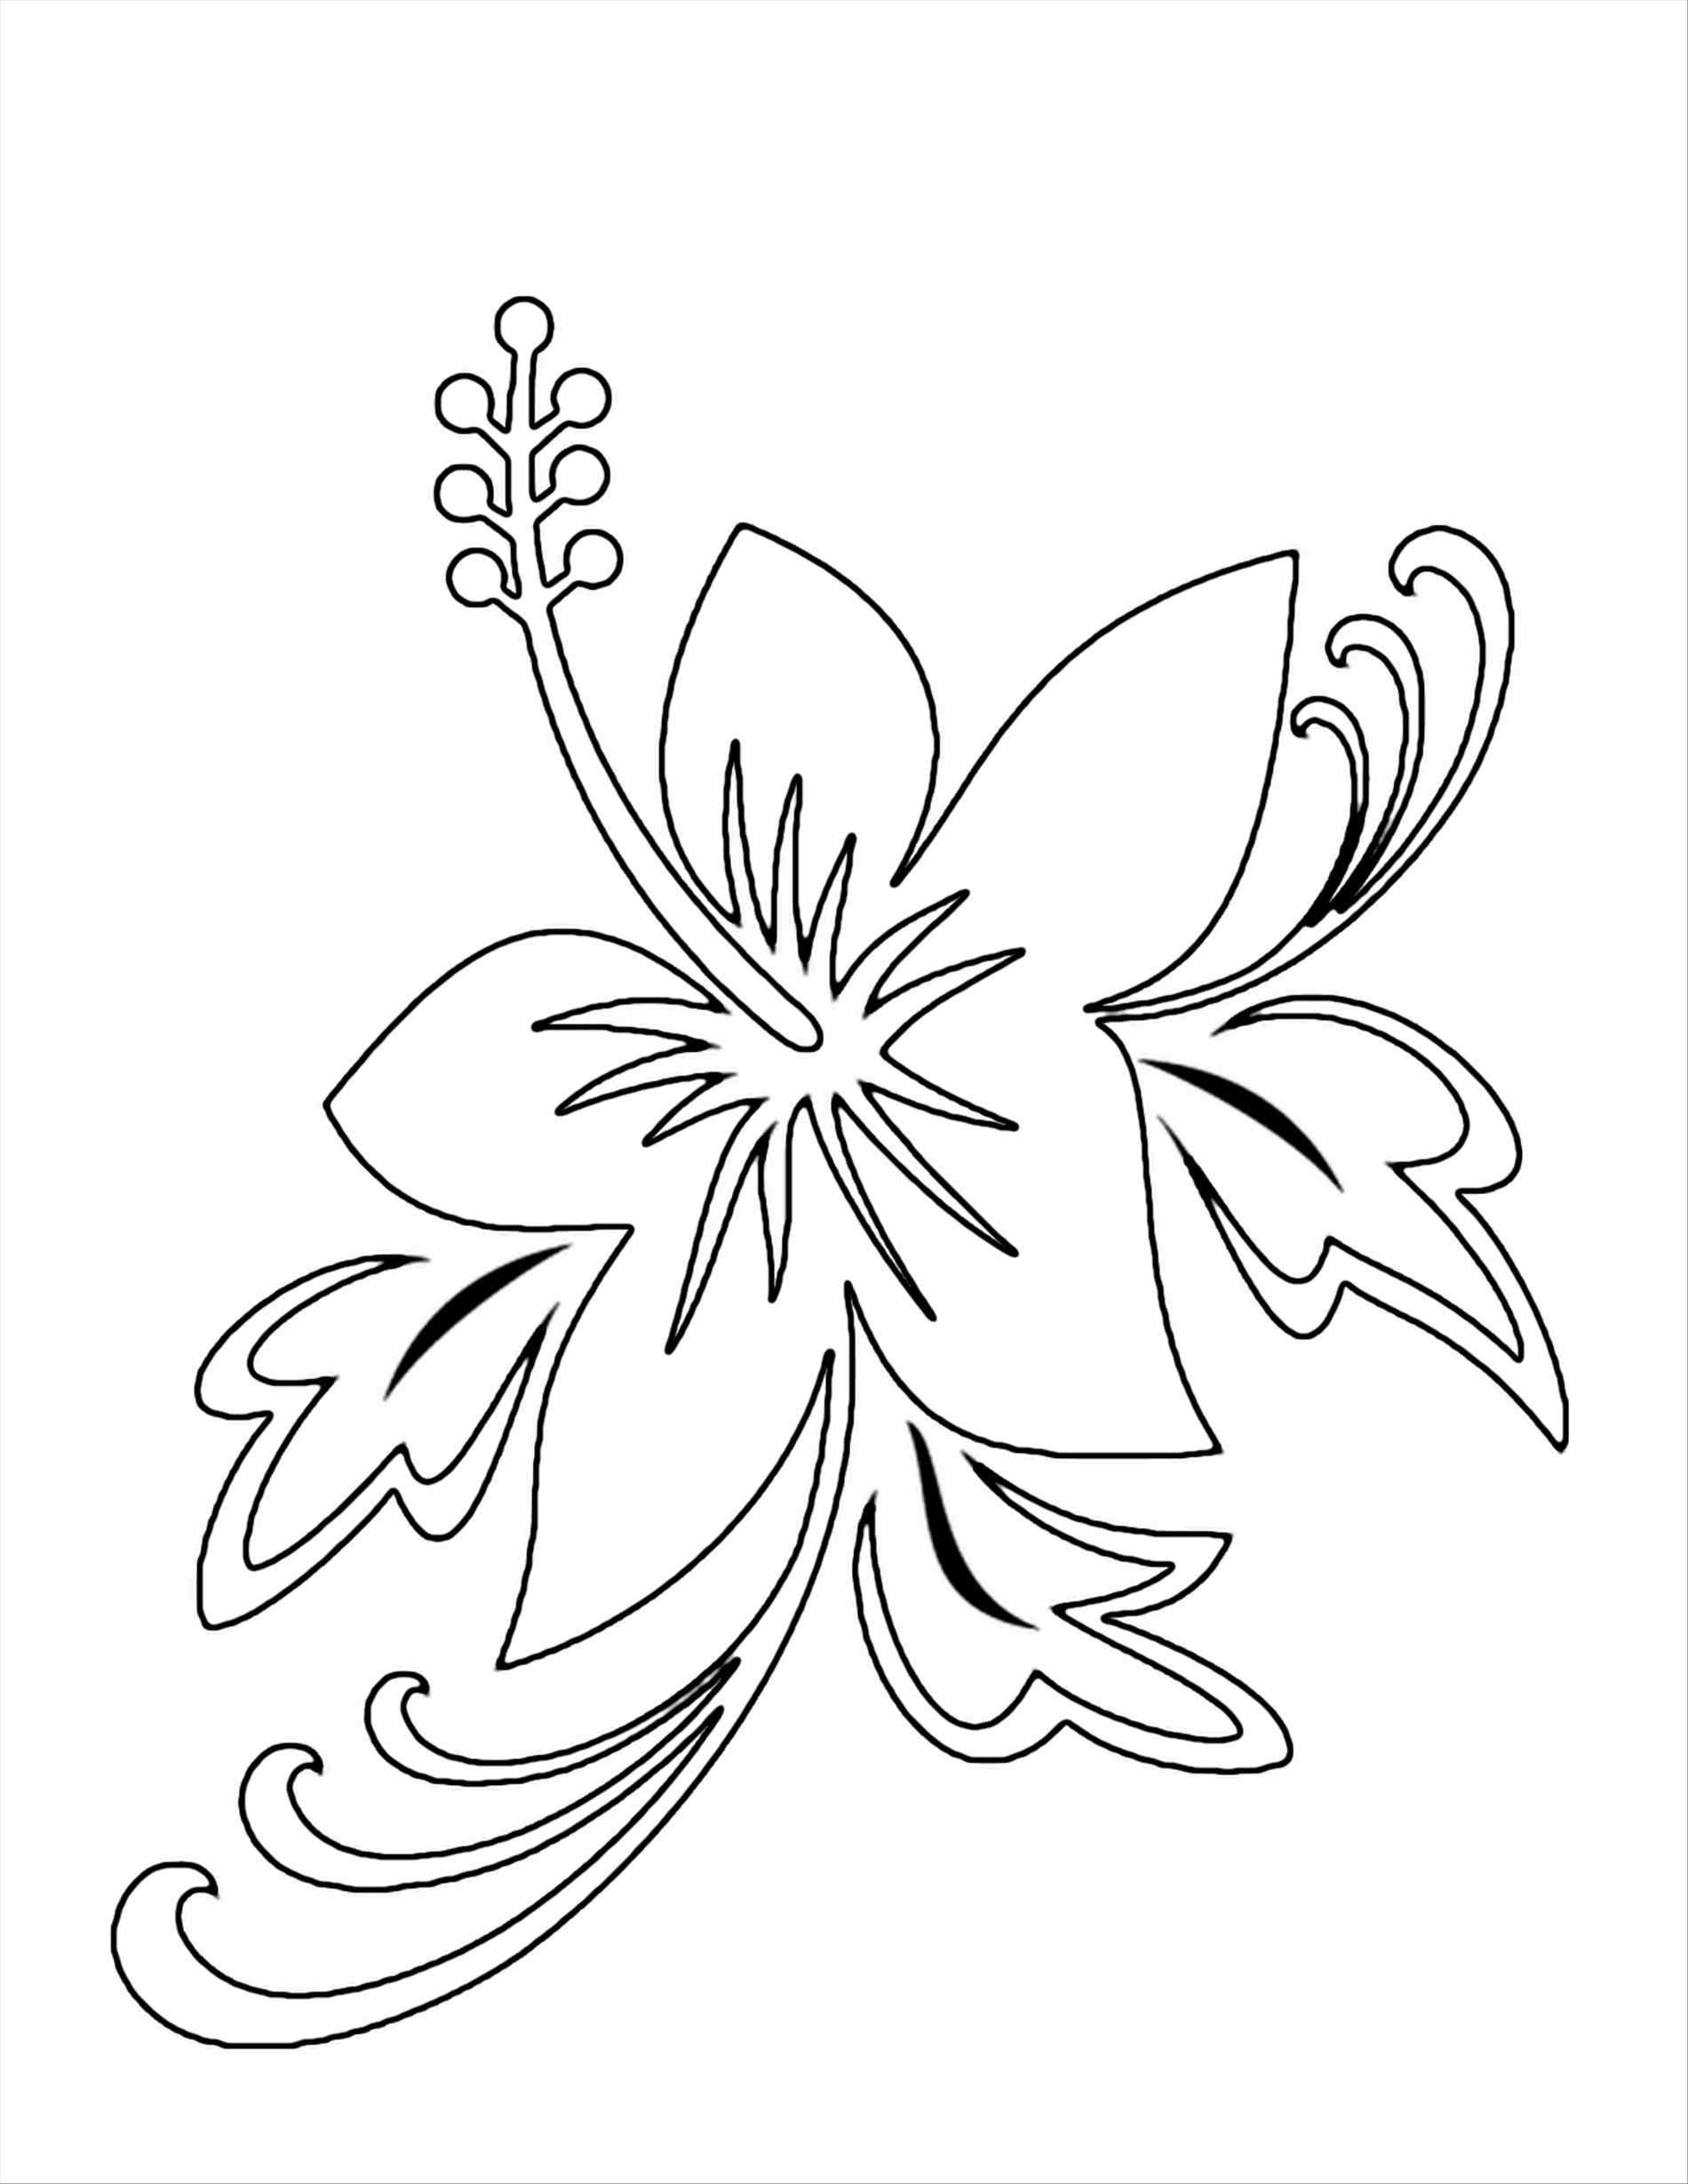 Hibiscus flower drawing step by step at getdrawings free for 1900x2458 drawings of hawaiian flowers your meme source izmirmasajfo